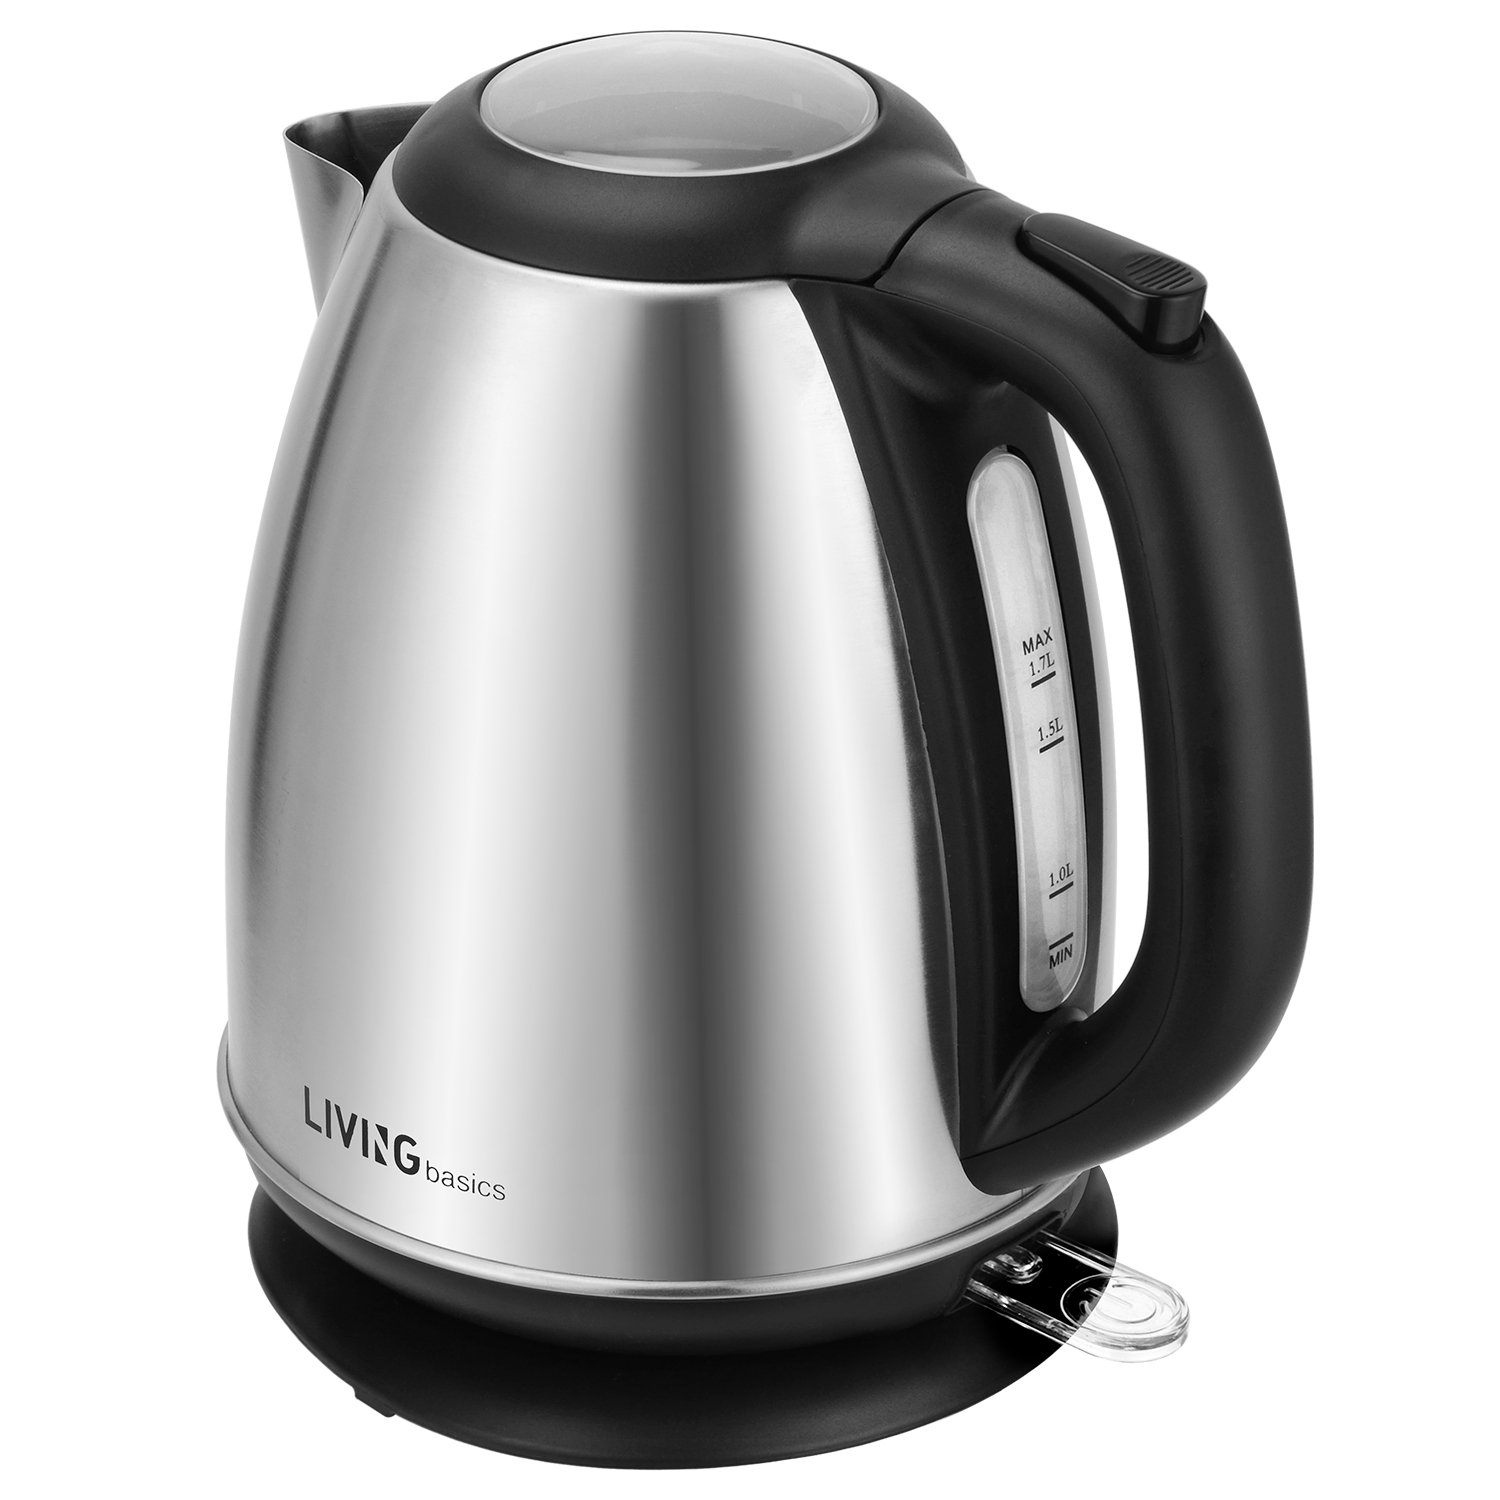 Stainless Steel Electric Kettle - 1.7L 1500W Fast Boiling Tea Kettle - BPA-Free Electric Water Boiler with Auto Shut-Off, Boil Dry Protection, LED Light Indicator - LIVINGbasics